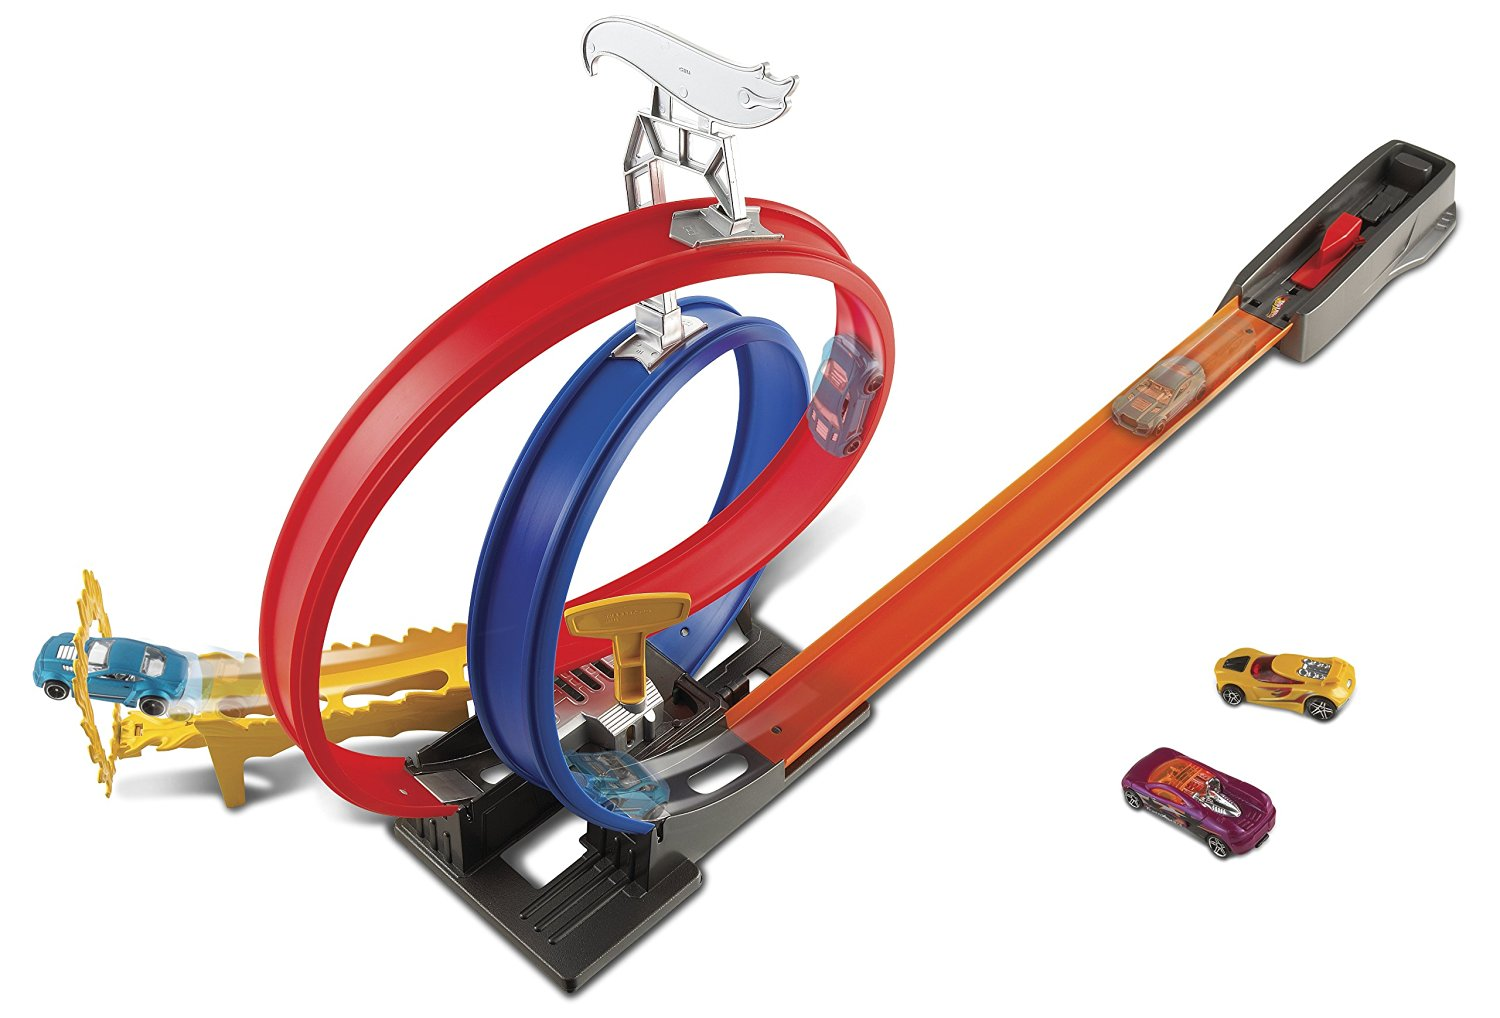 Hot Wheels Energy Track Playset